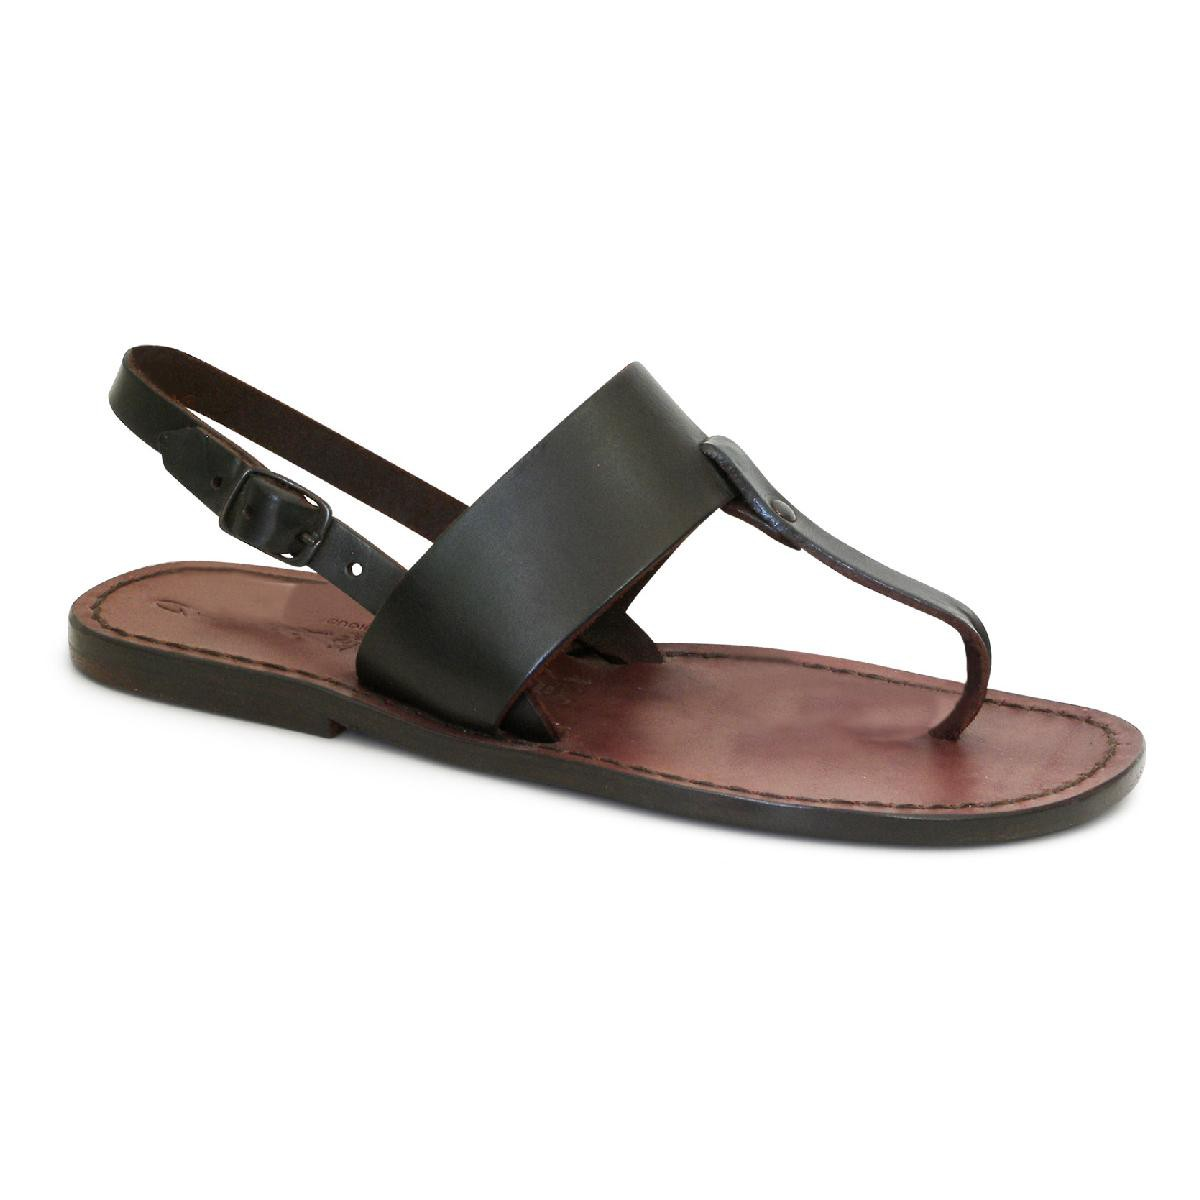 thong sandals for women handmade in brown leather. Black Bedroom Furniture Sets. Home Design Ideas